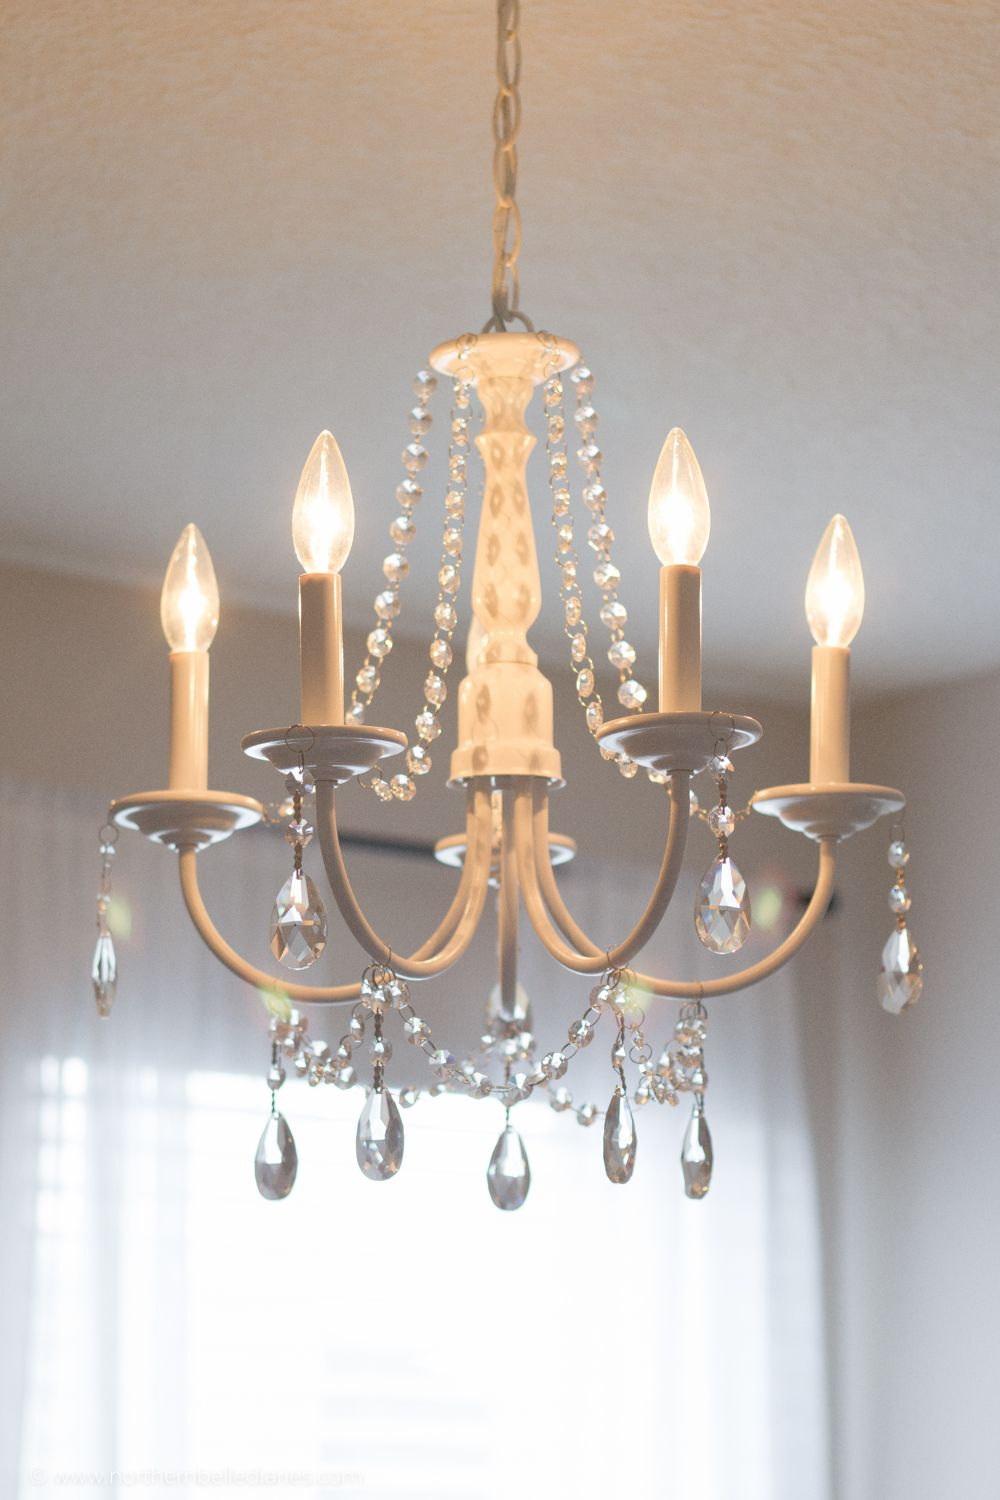 Diy crystal chandelier easy tutorial chandeliers crystals and diy crystal chandelier easy tutorial mozeypictures Images